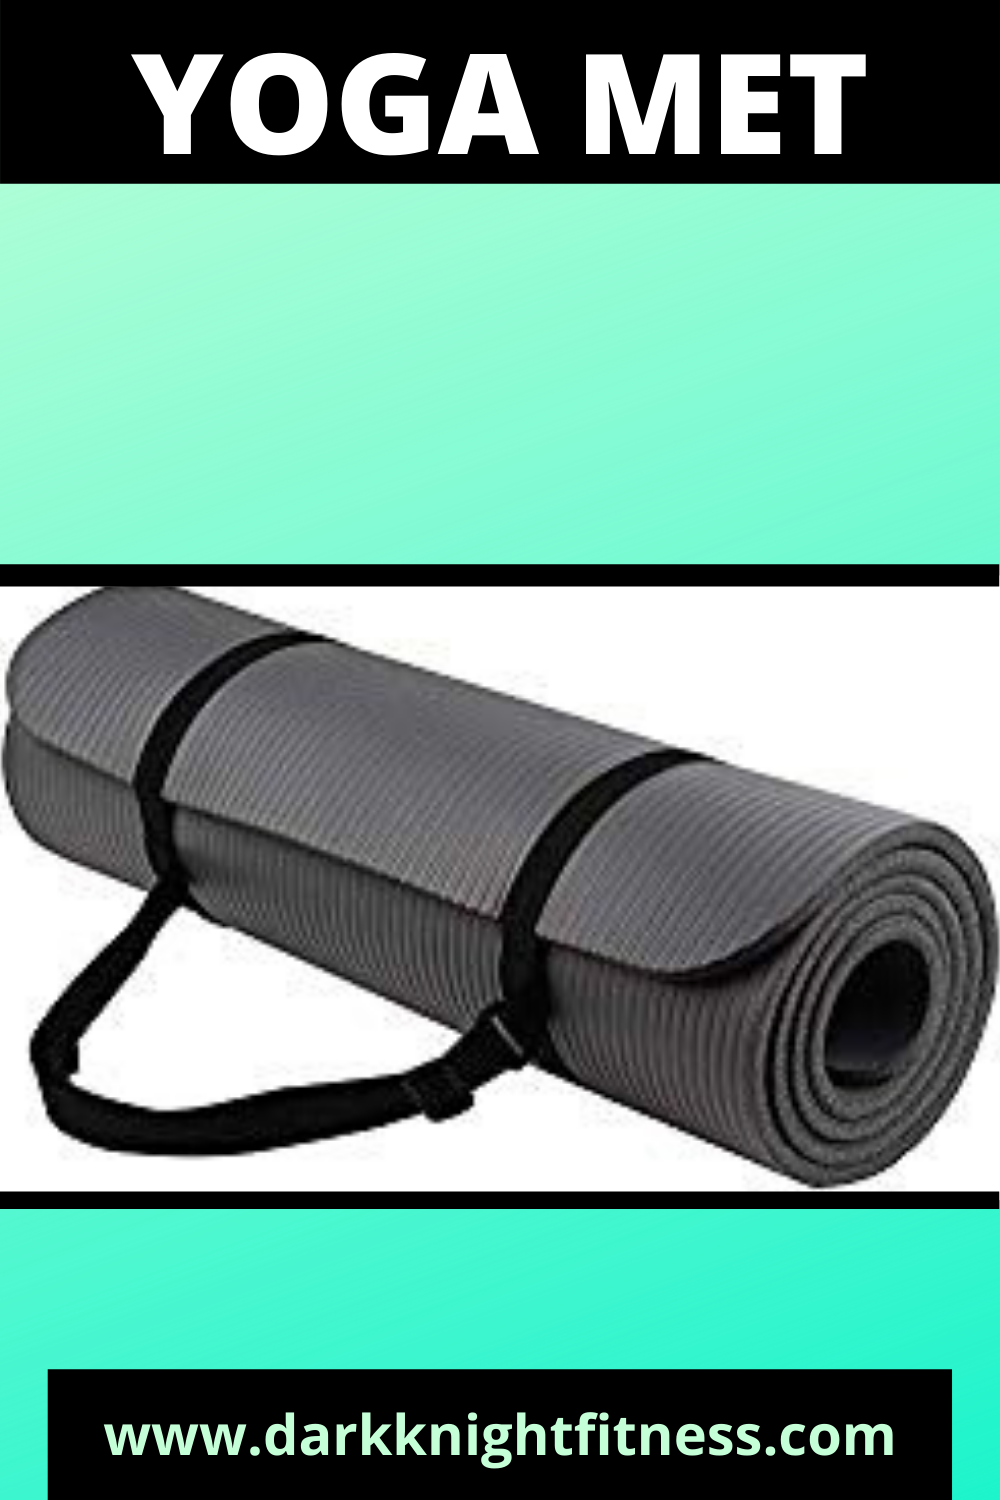 Balancefrom Goyoga All Purpose 1 2 Inch Extra Thick High Density Anti Tear Exercise Yoga Mat With Carrying Strap Yoga Fitness Injury Prevention Exercise